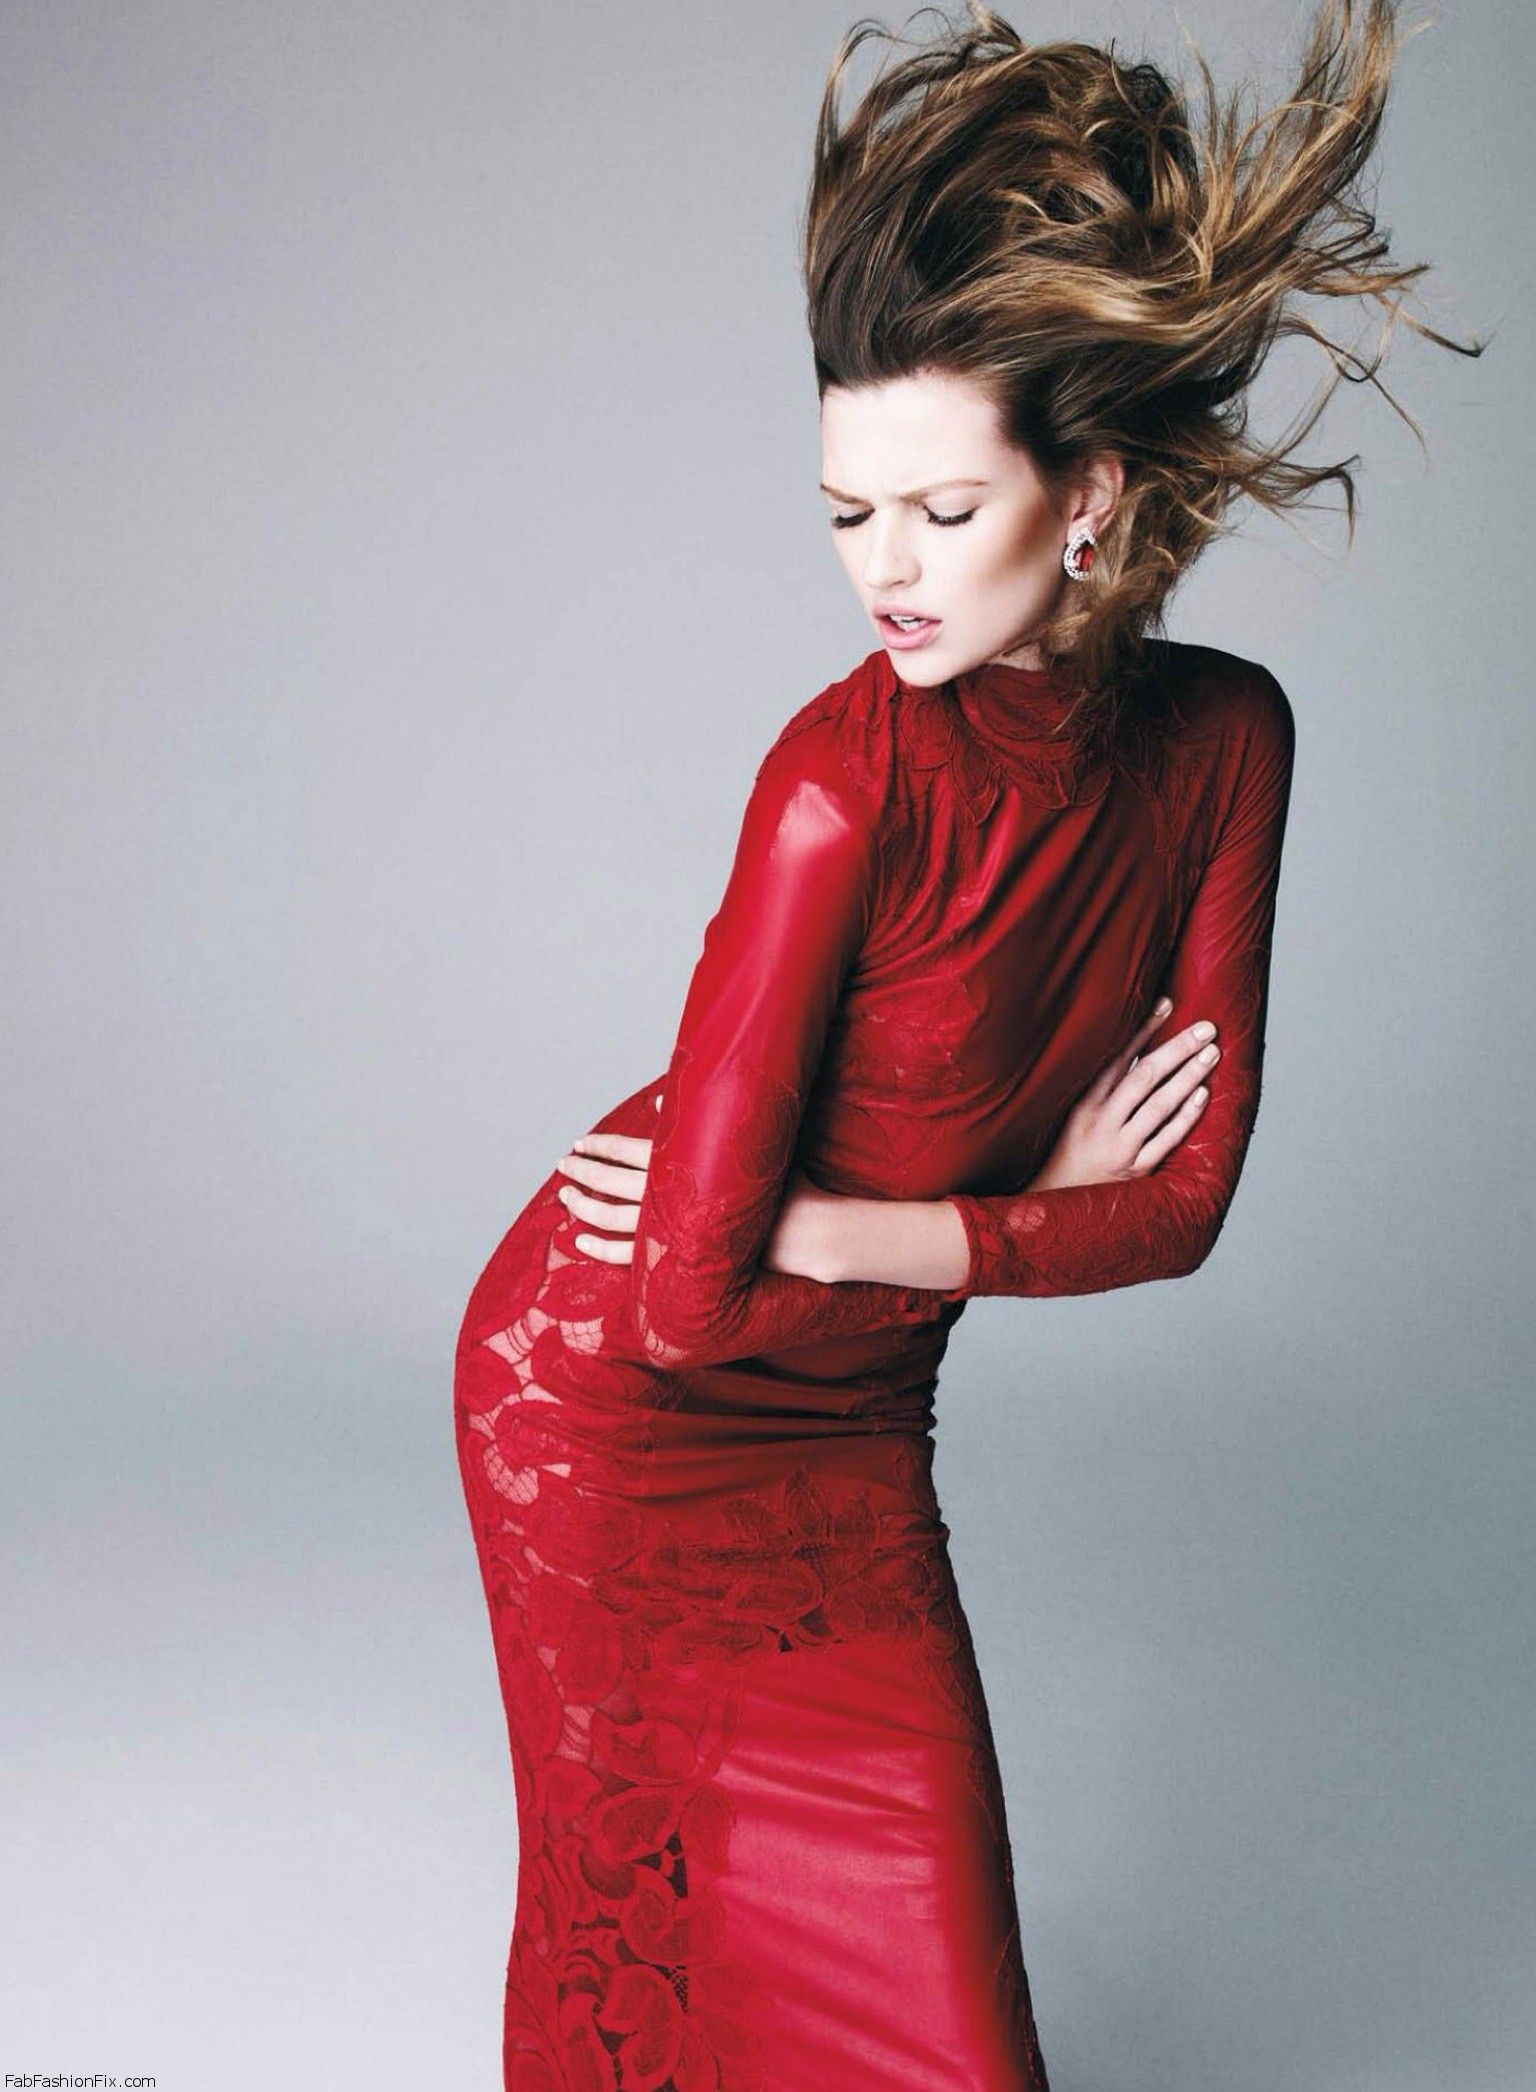 fashion_scans_remastered-bette_frank-harpers_bazaar_espana-december_2013-scanned_by_vampirehorde-hq-7